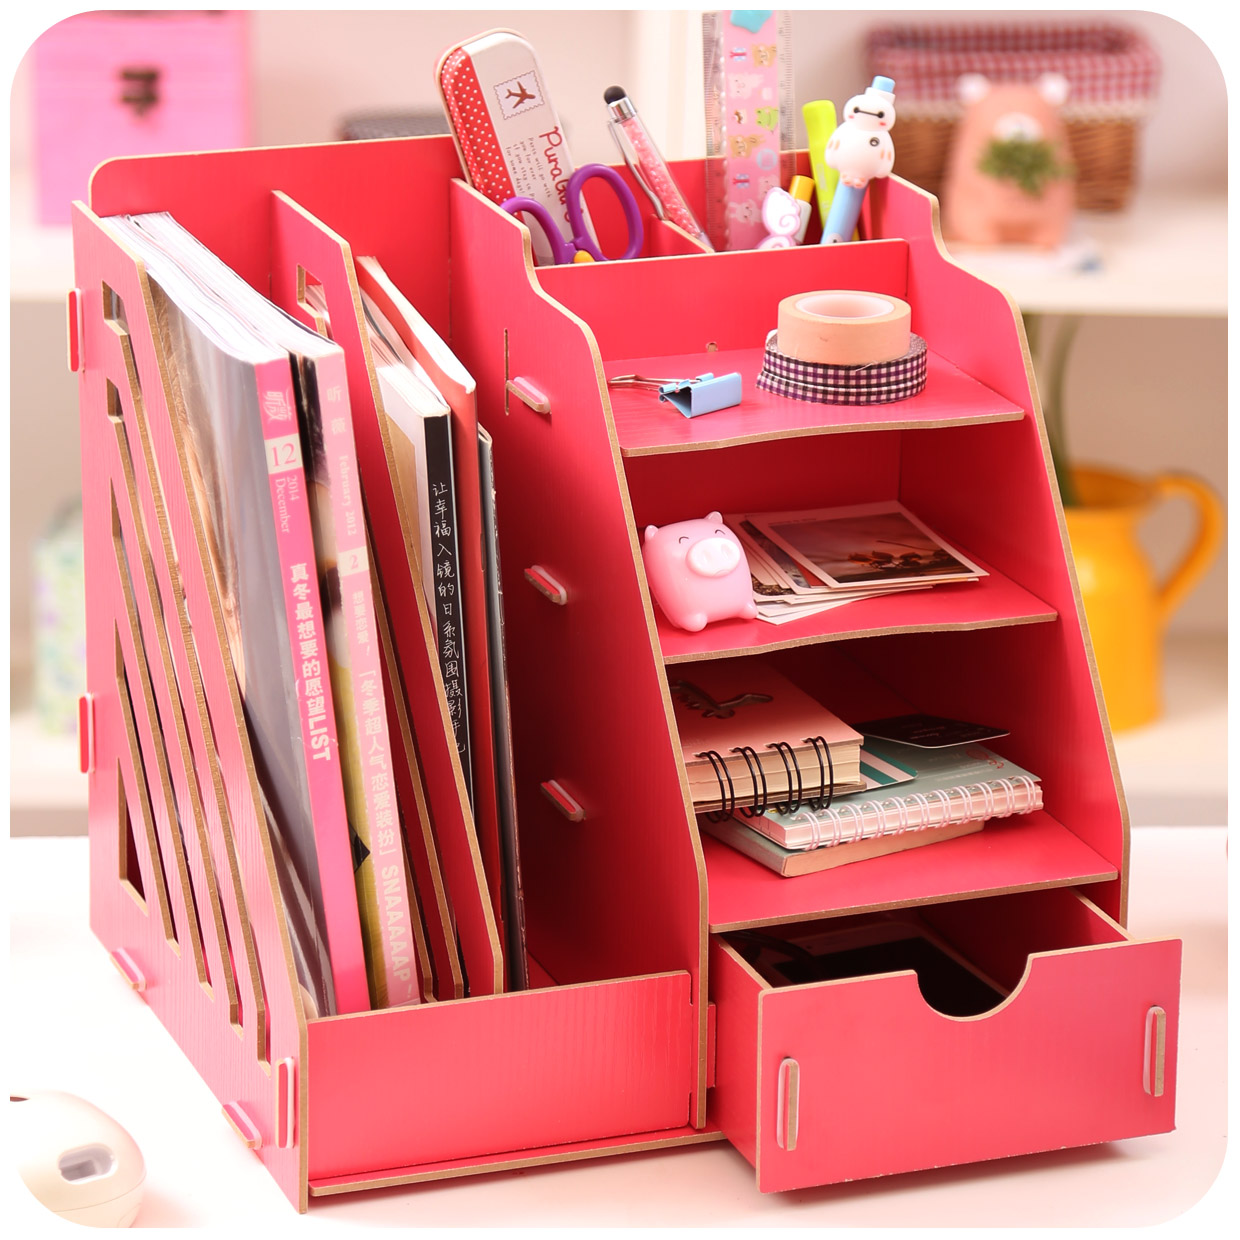 Aliexpress.com : Buy Creative DIY Wooden Desktop File ...